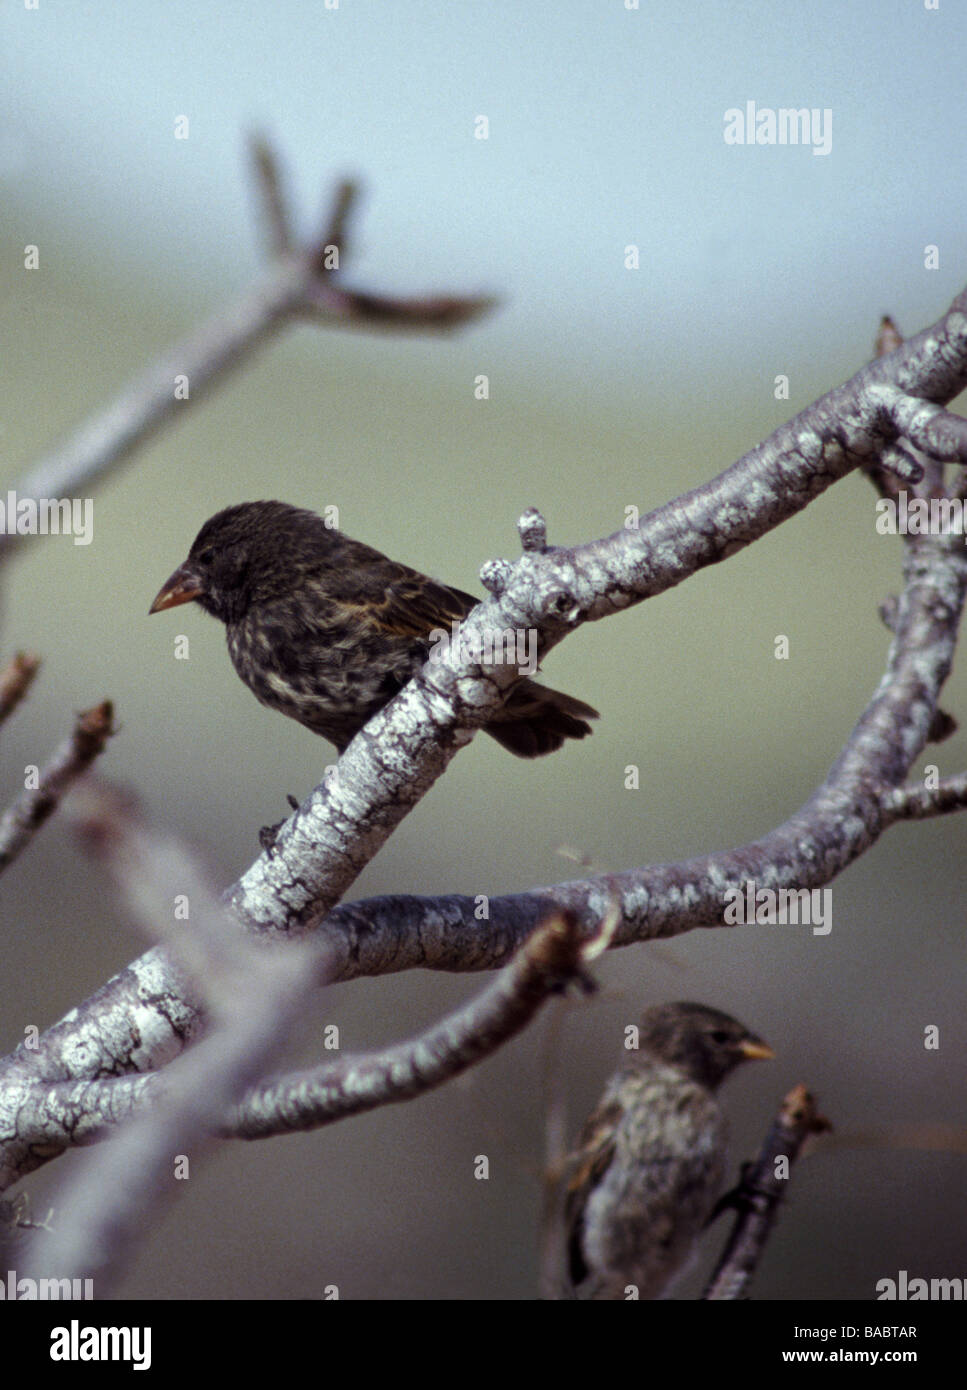 Galapagos Islands. Cactus Finch 'Geospiza scandens' Pair in Palo Santo tree - Stock Image